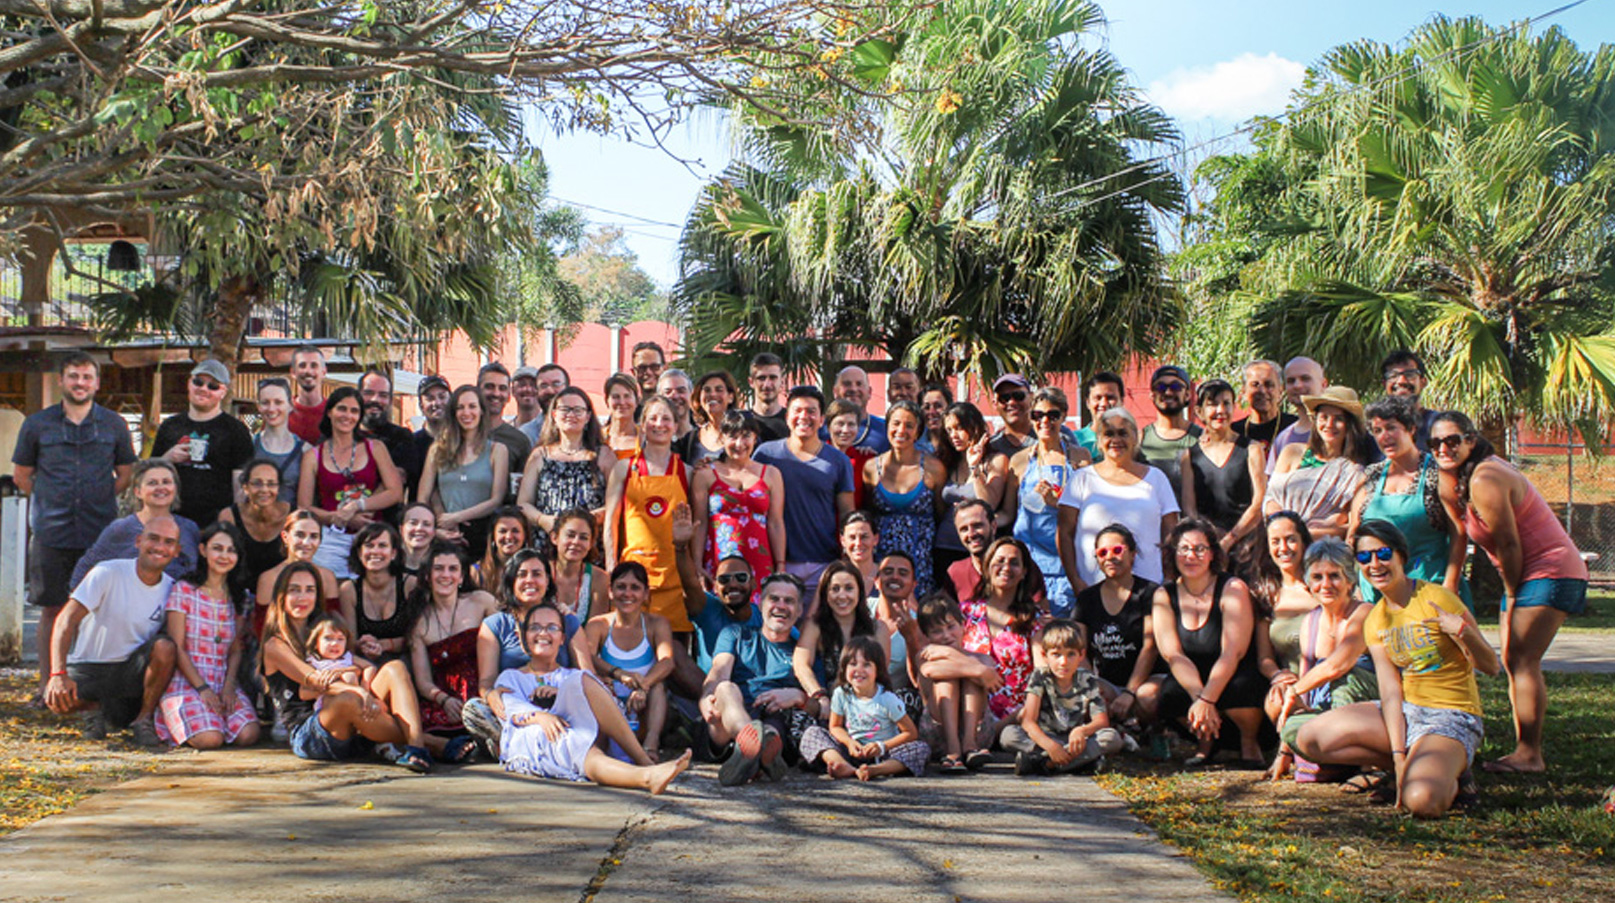 Meditating together in Costa Rica at the Americas Course 2020